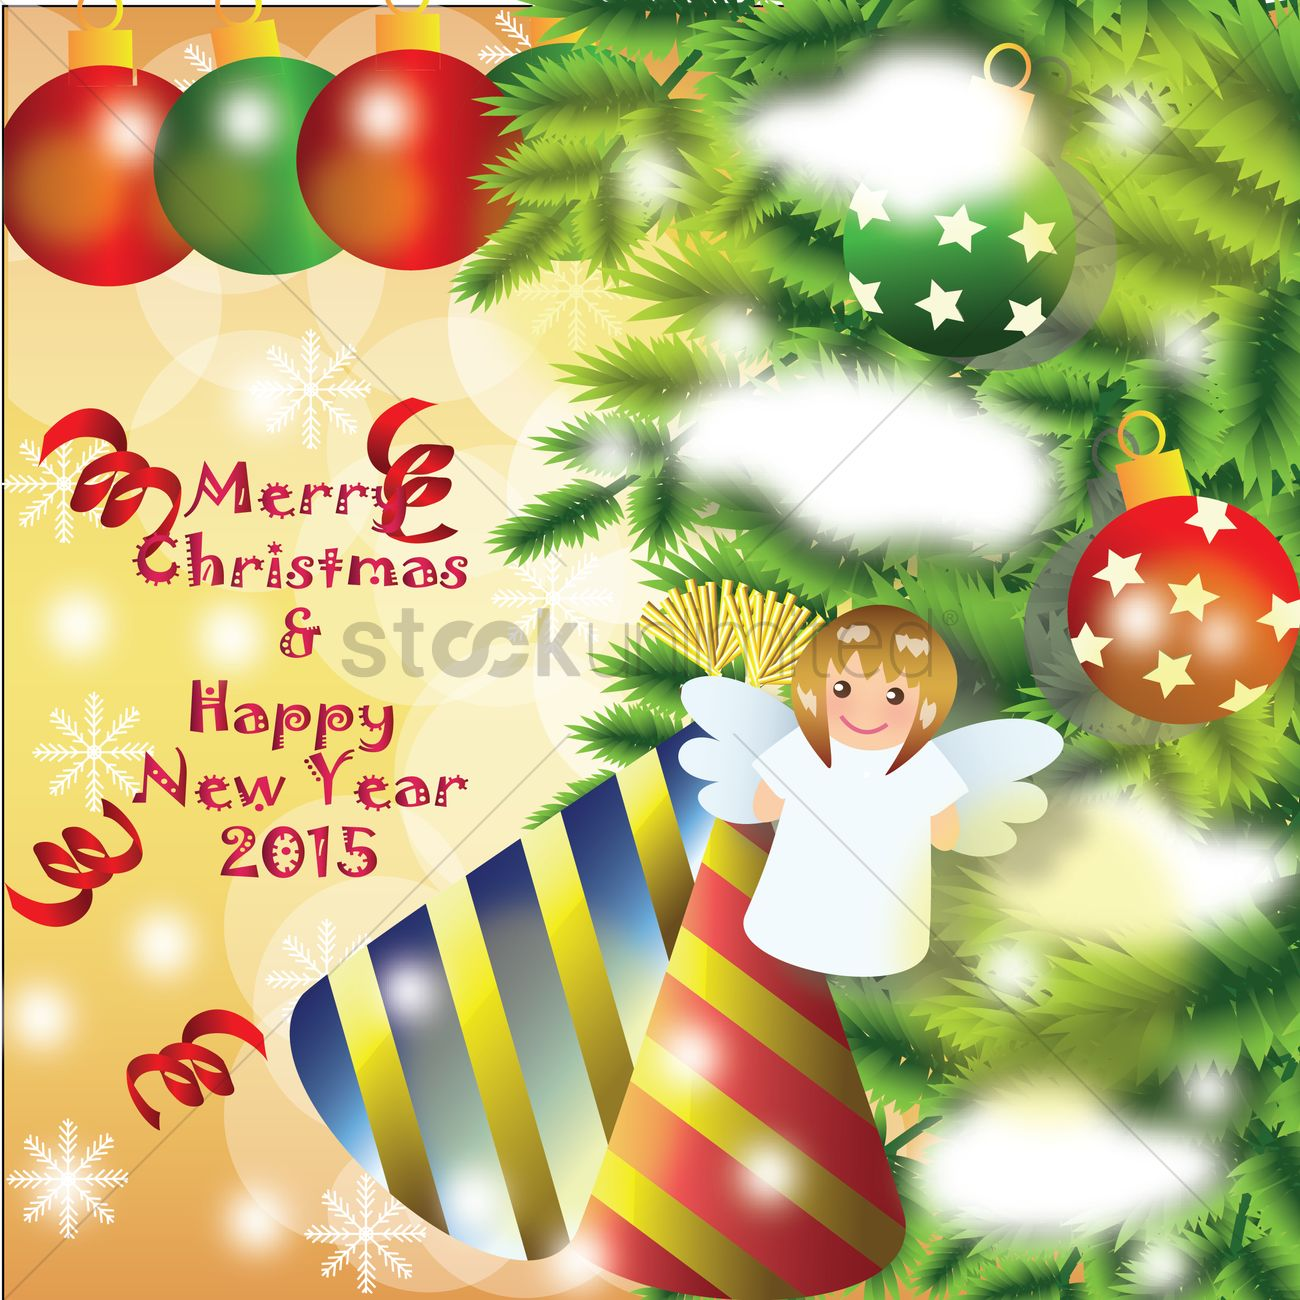 Merry Christmas And Happy New Year Card Vector Image 1483918